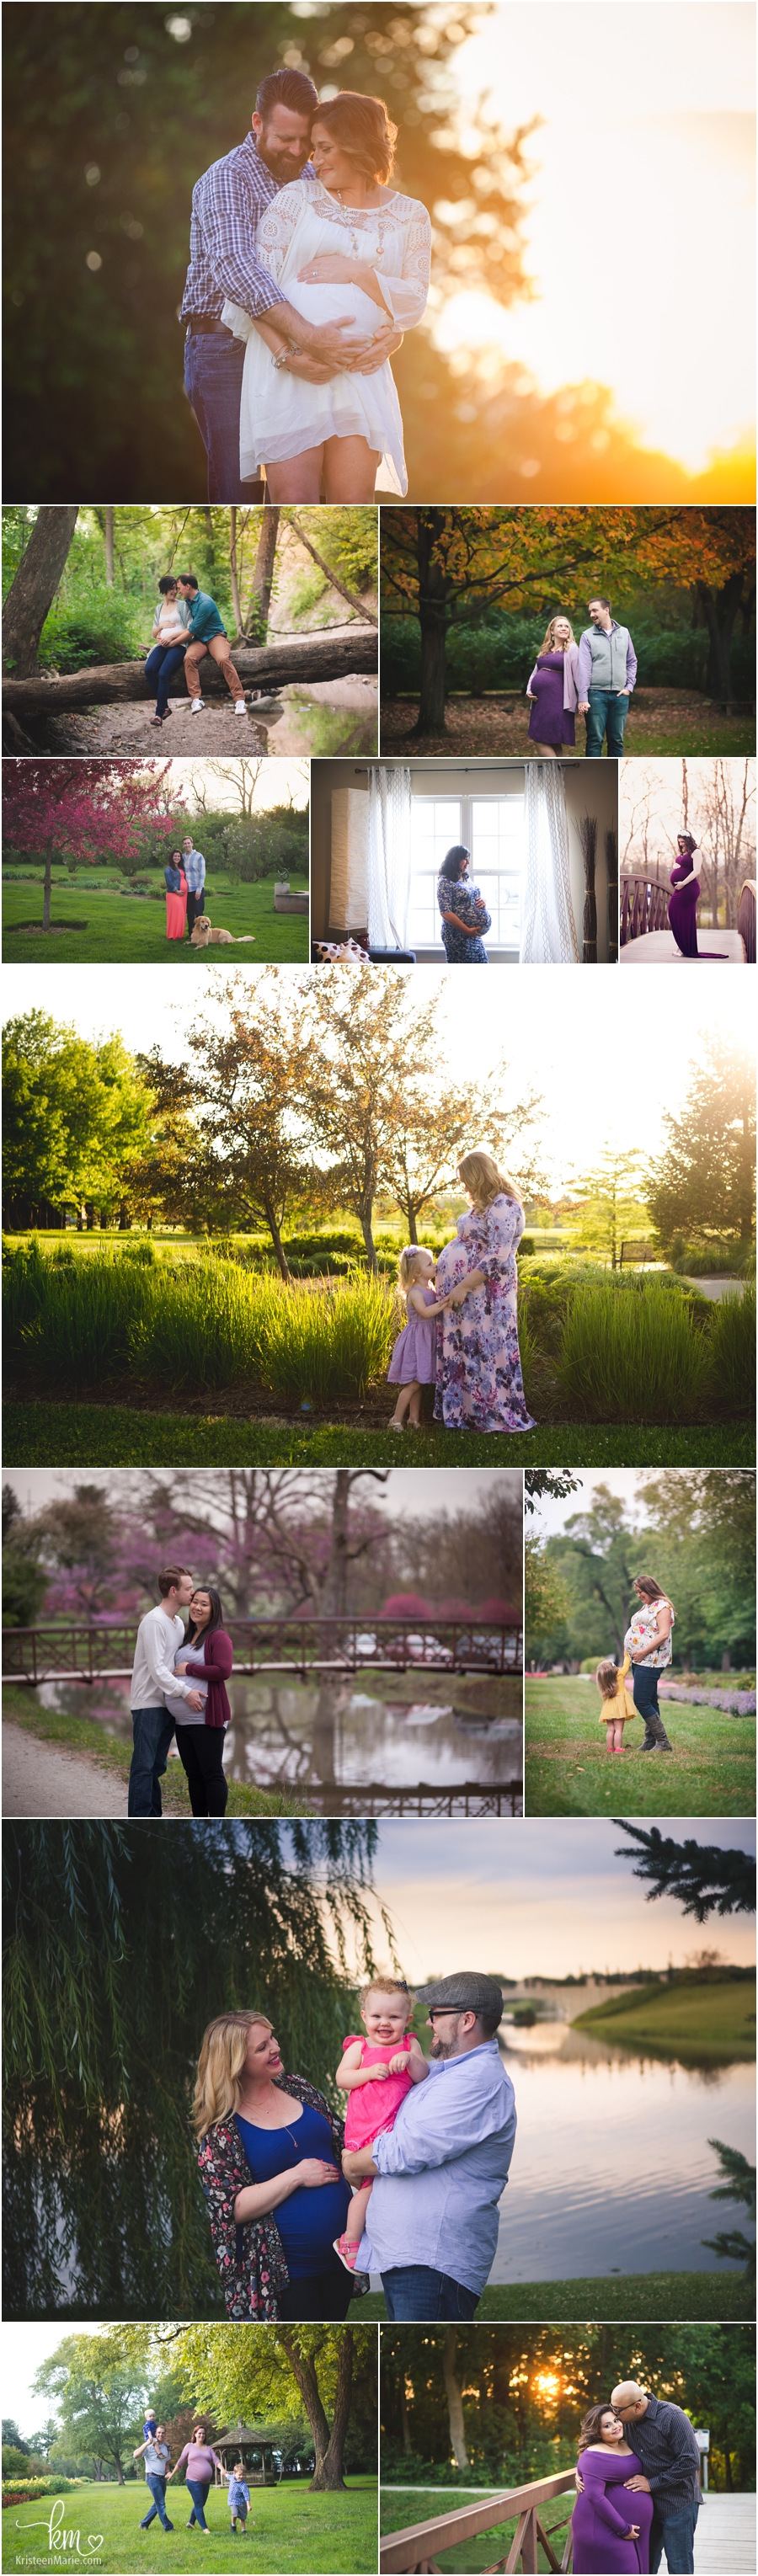 Indianapolis maternity photographer - KristeenMarie Photography